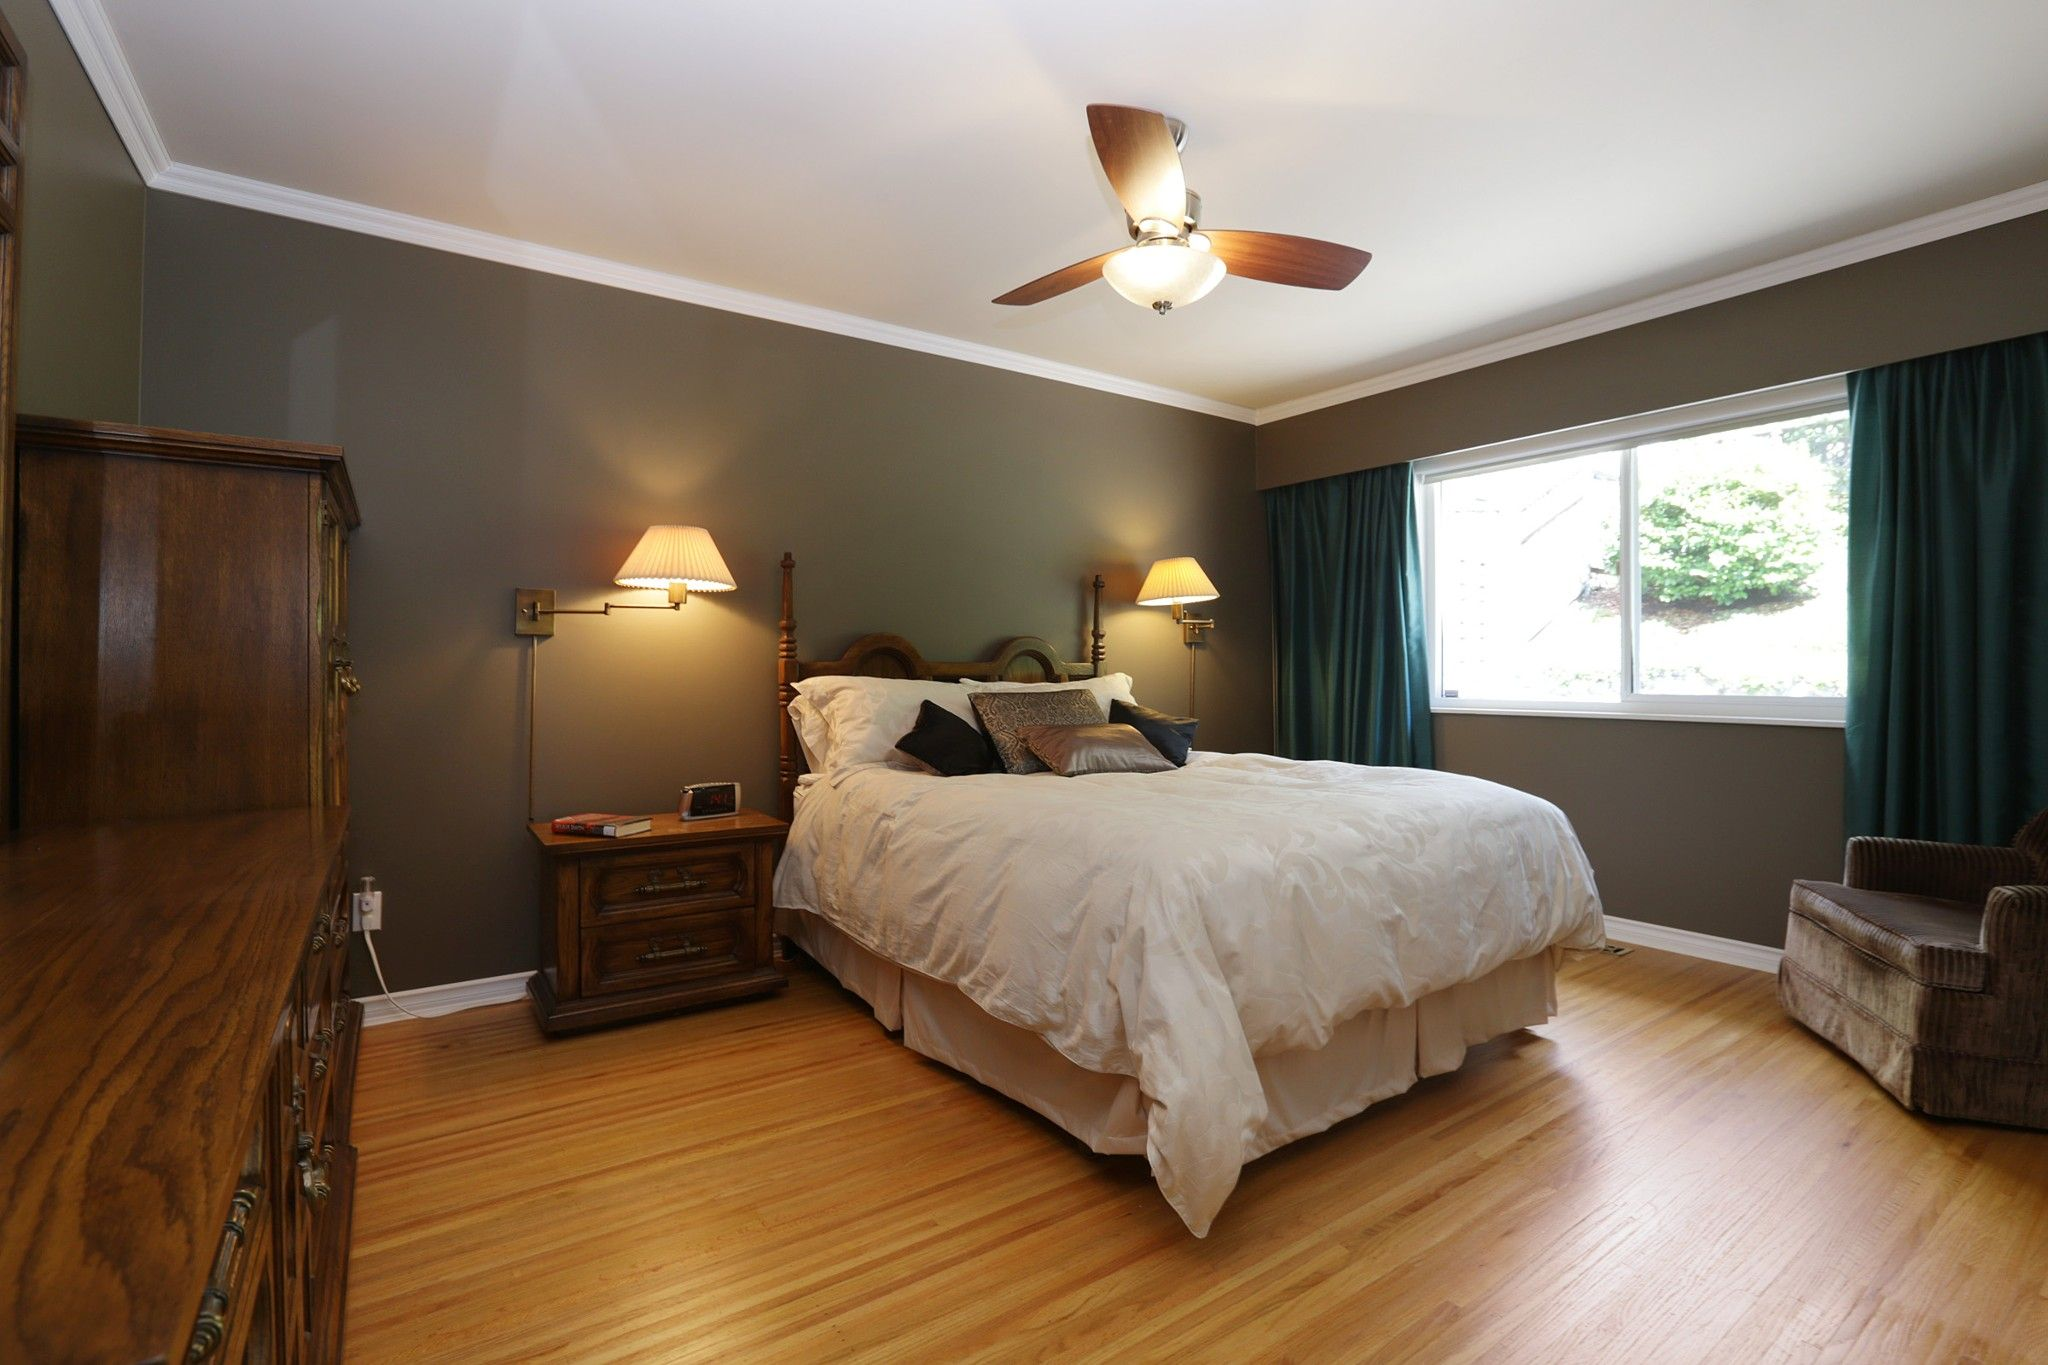 Photo 10: Photos: 372 VENTURA Crescent in North Vancouver: Upper Delbrook House for sale : MLS®# R2284717